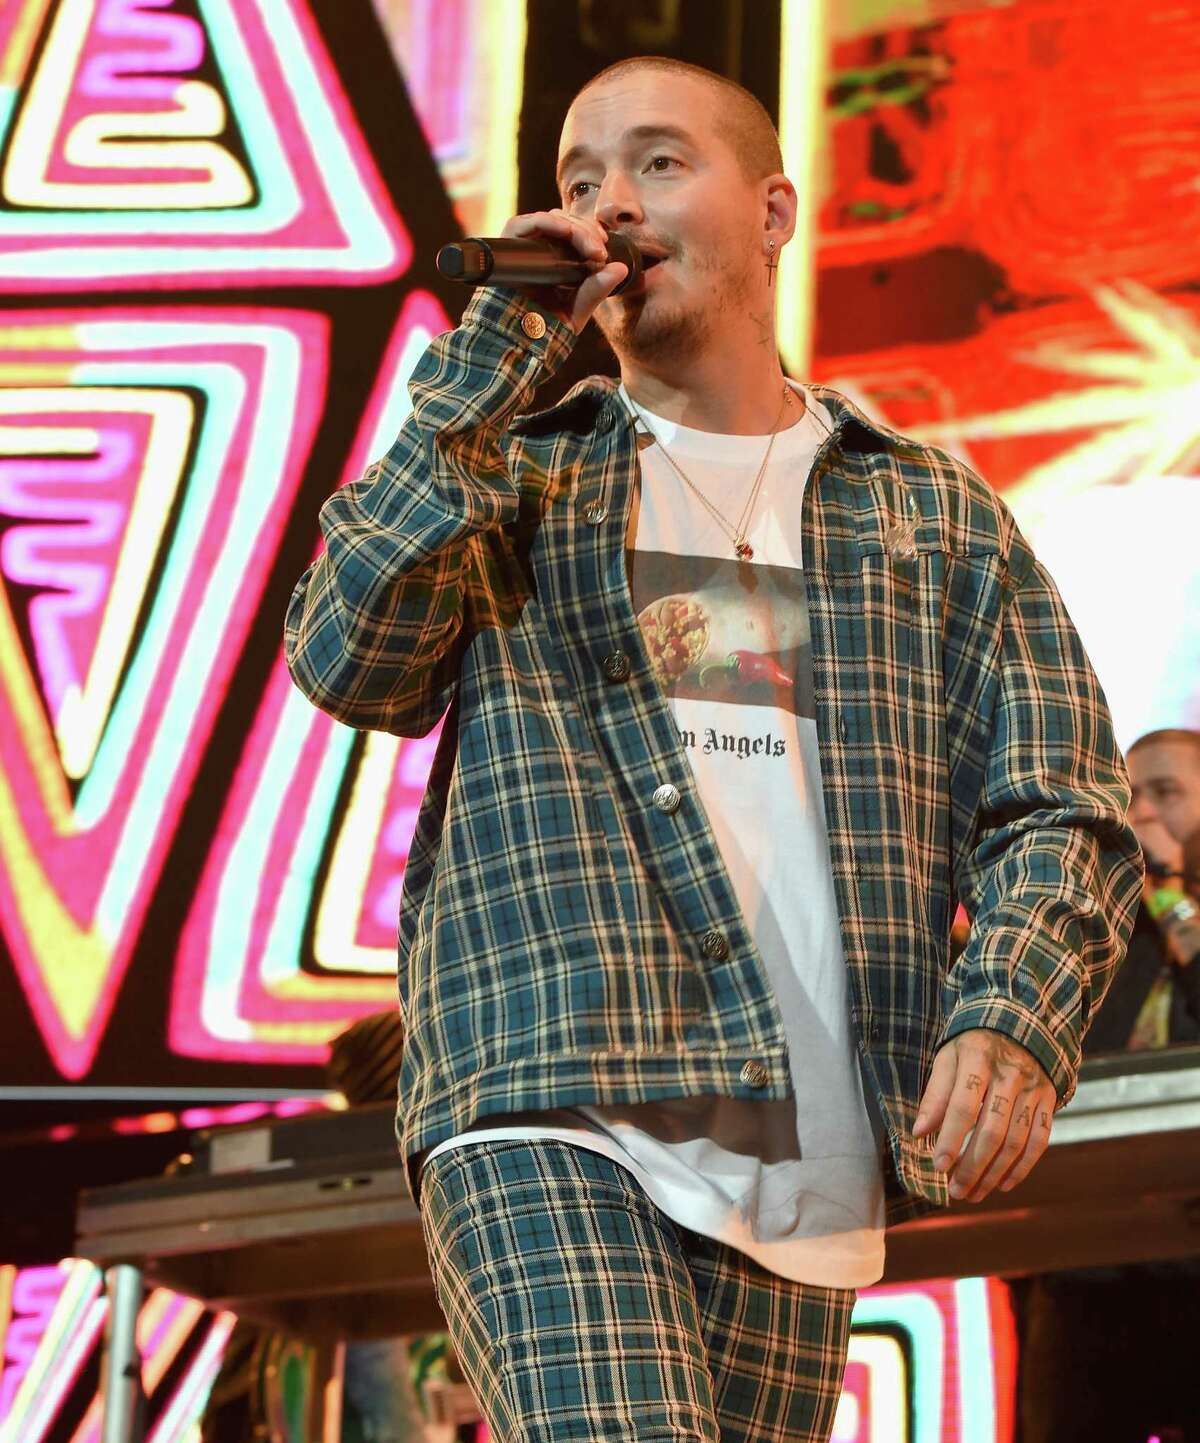 LOS ANGELES, CA - JANUARY 20: J. Balvin performs onstage during Calibash Los Angeles 2018 at Staples Center on January 20, 2018 in Los Angeles, California. (Photo by Kevin Winter/Getty Images)